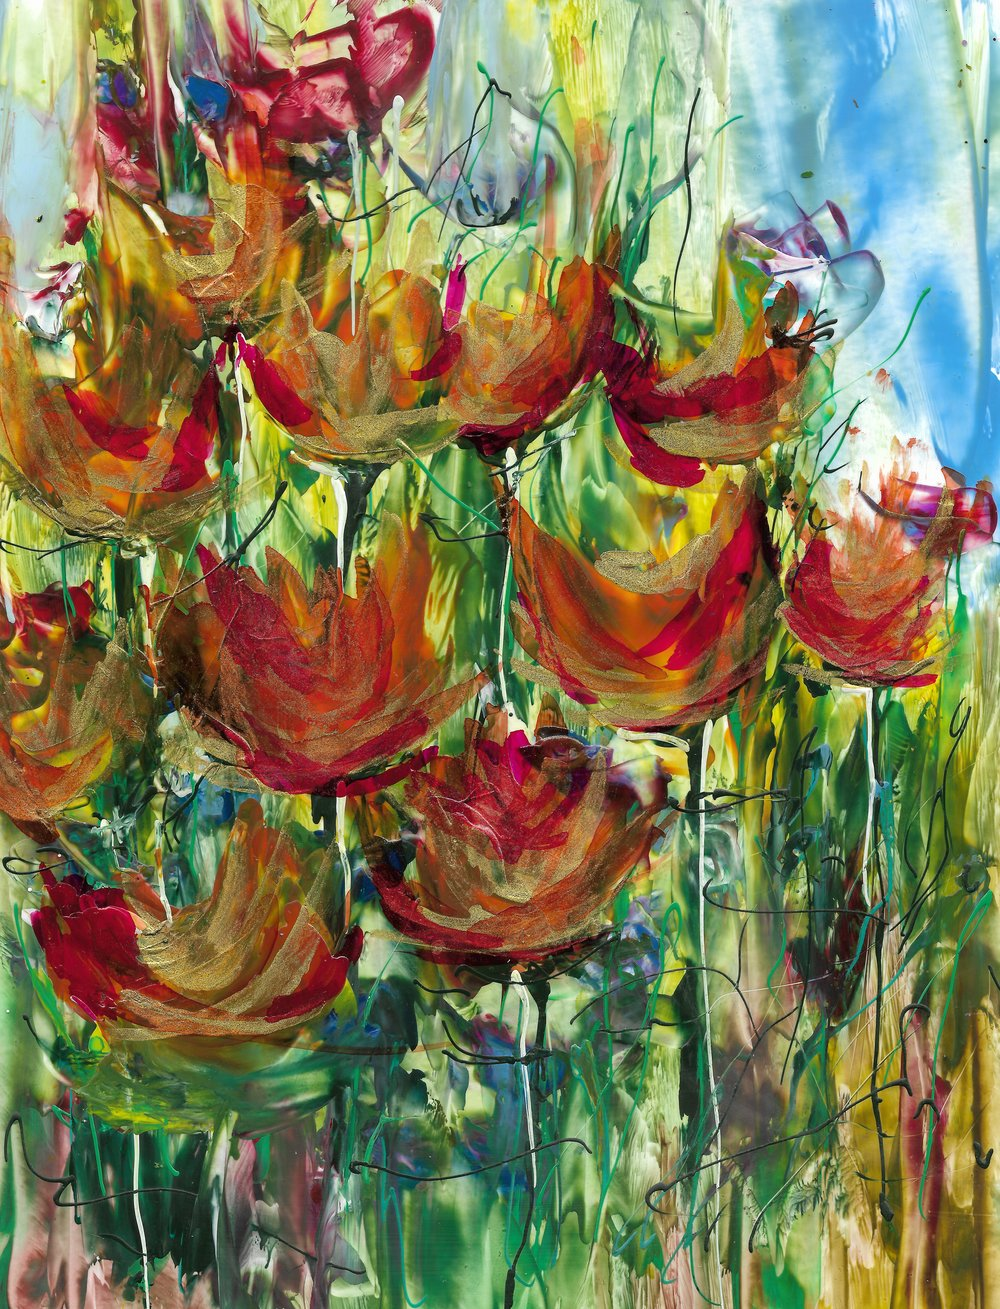 ABSTRACT POPPIES600dpi.jpeg